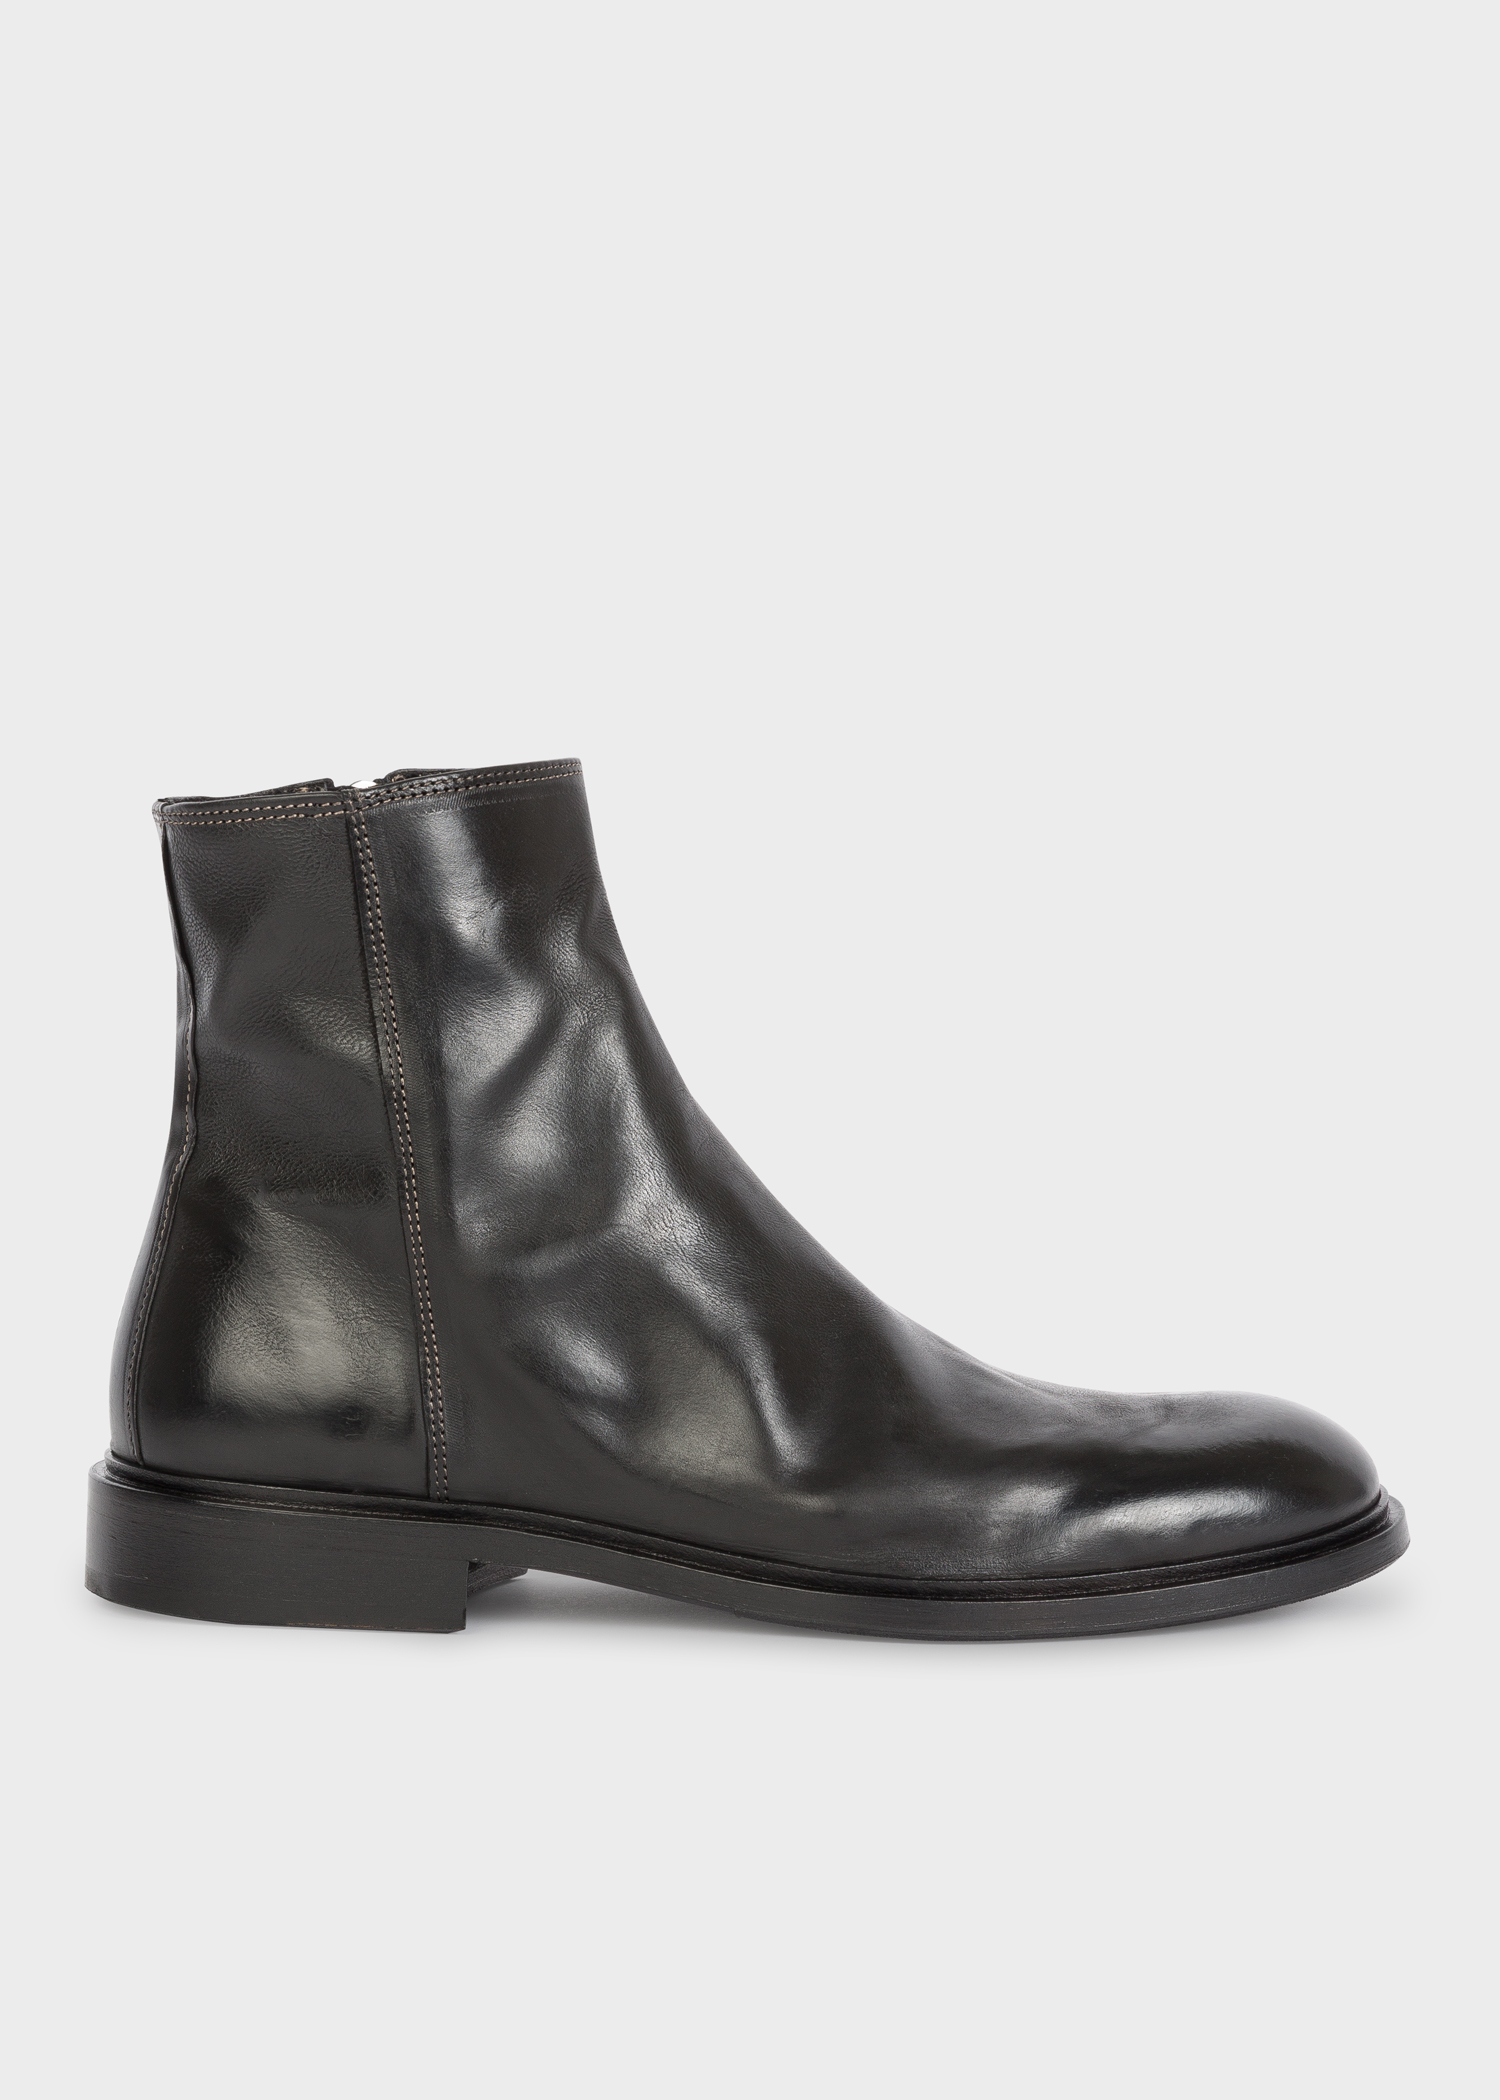 c0455e29ff06 Side View - Men s Black Leather  Billy  Zip Boots Paul Smith